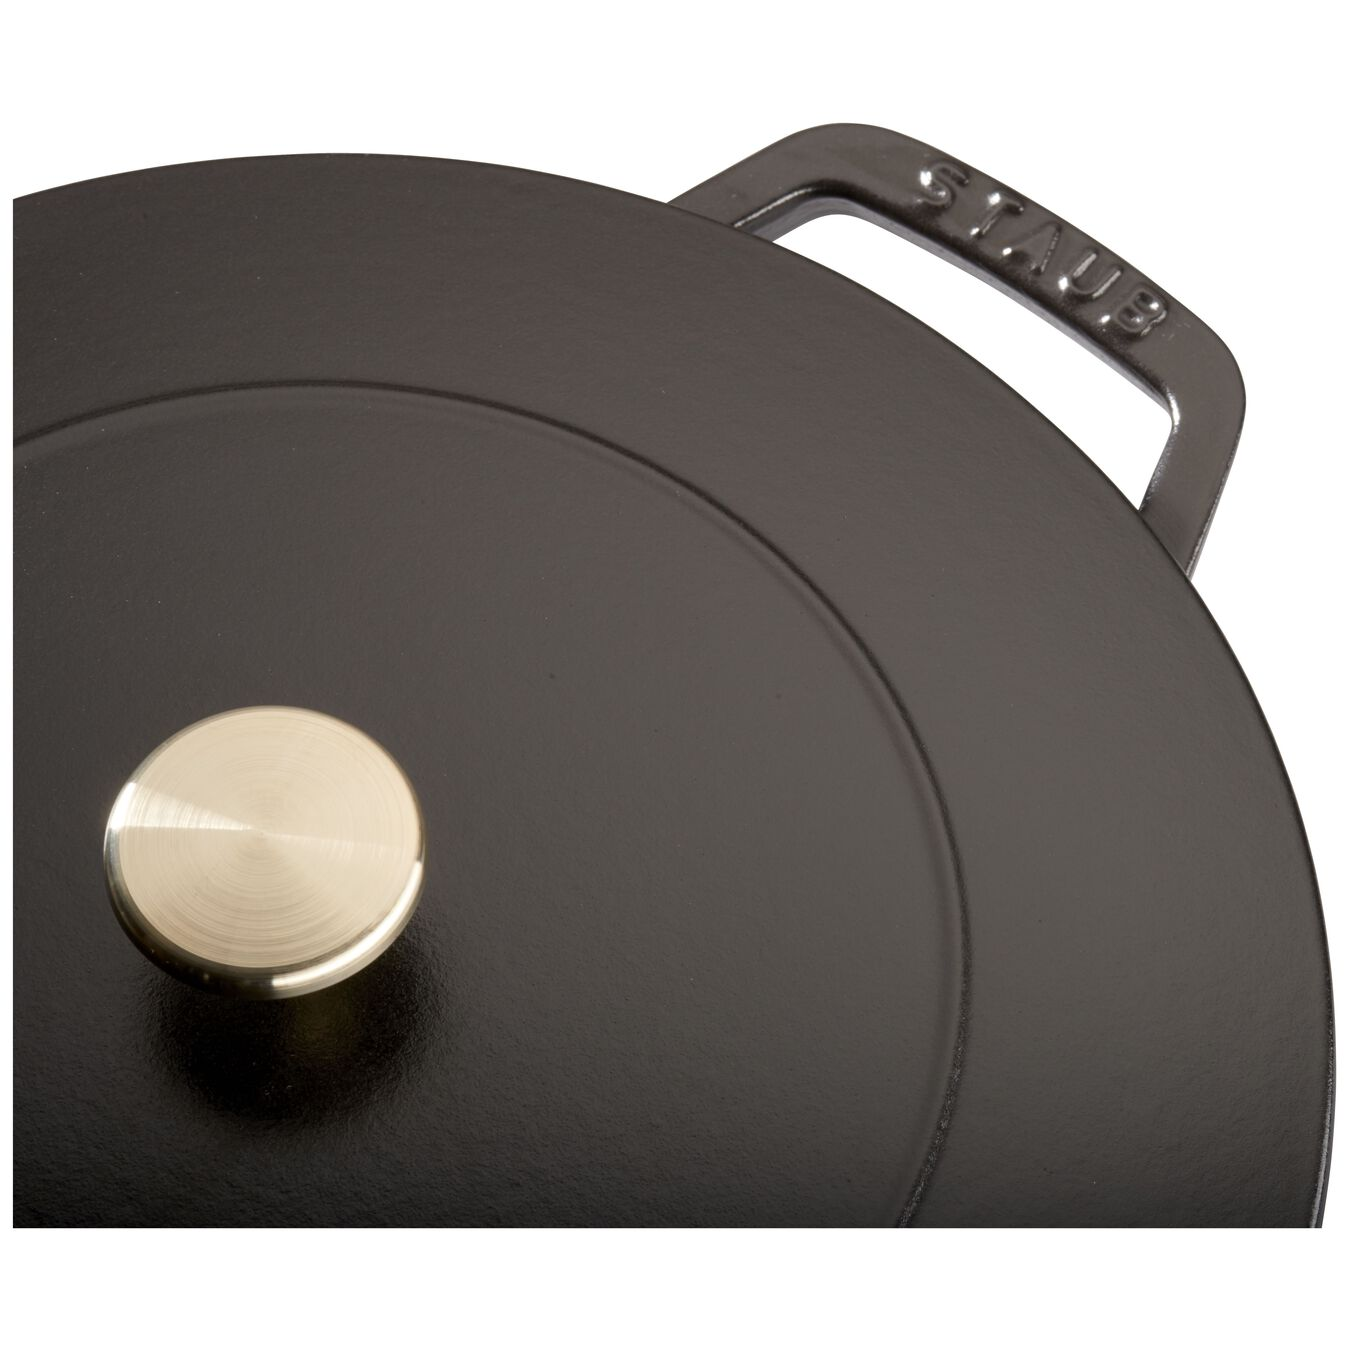 3.75-qt Essential French Oven - Matte Black,,large 5